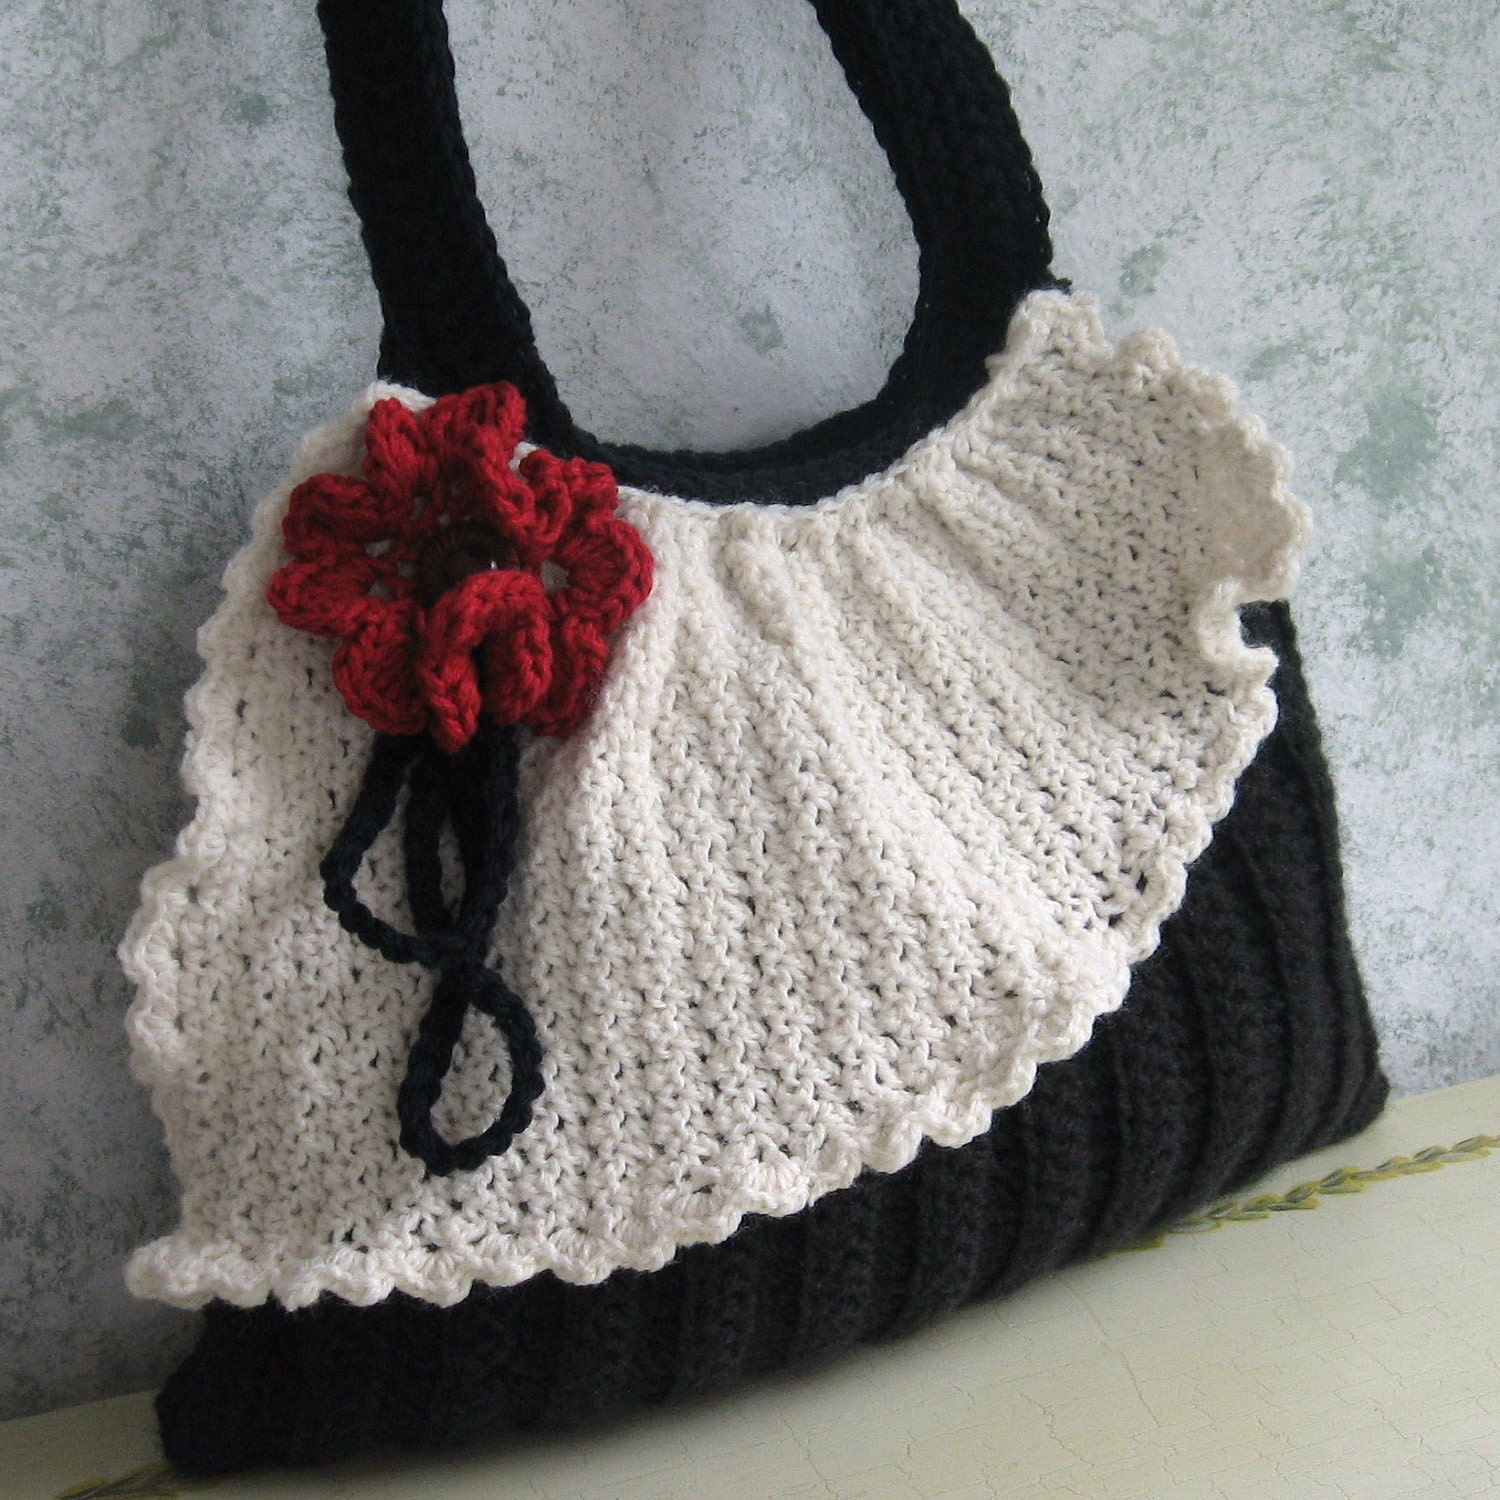 Crochet Purse Pattern Pleated Bag With Drape And by kalliedesigns